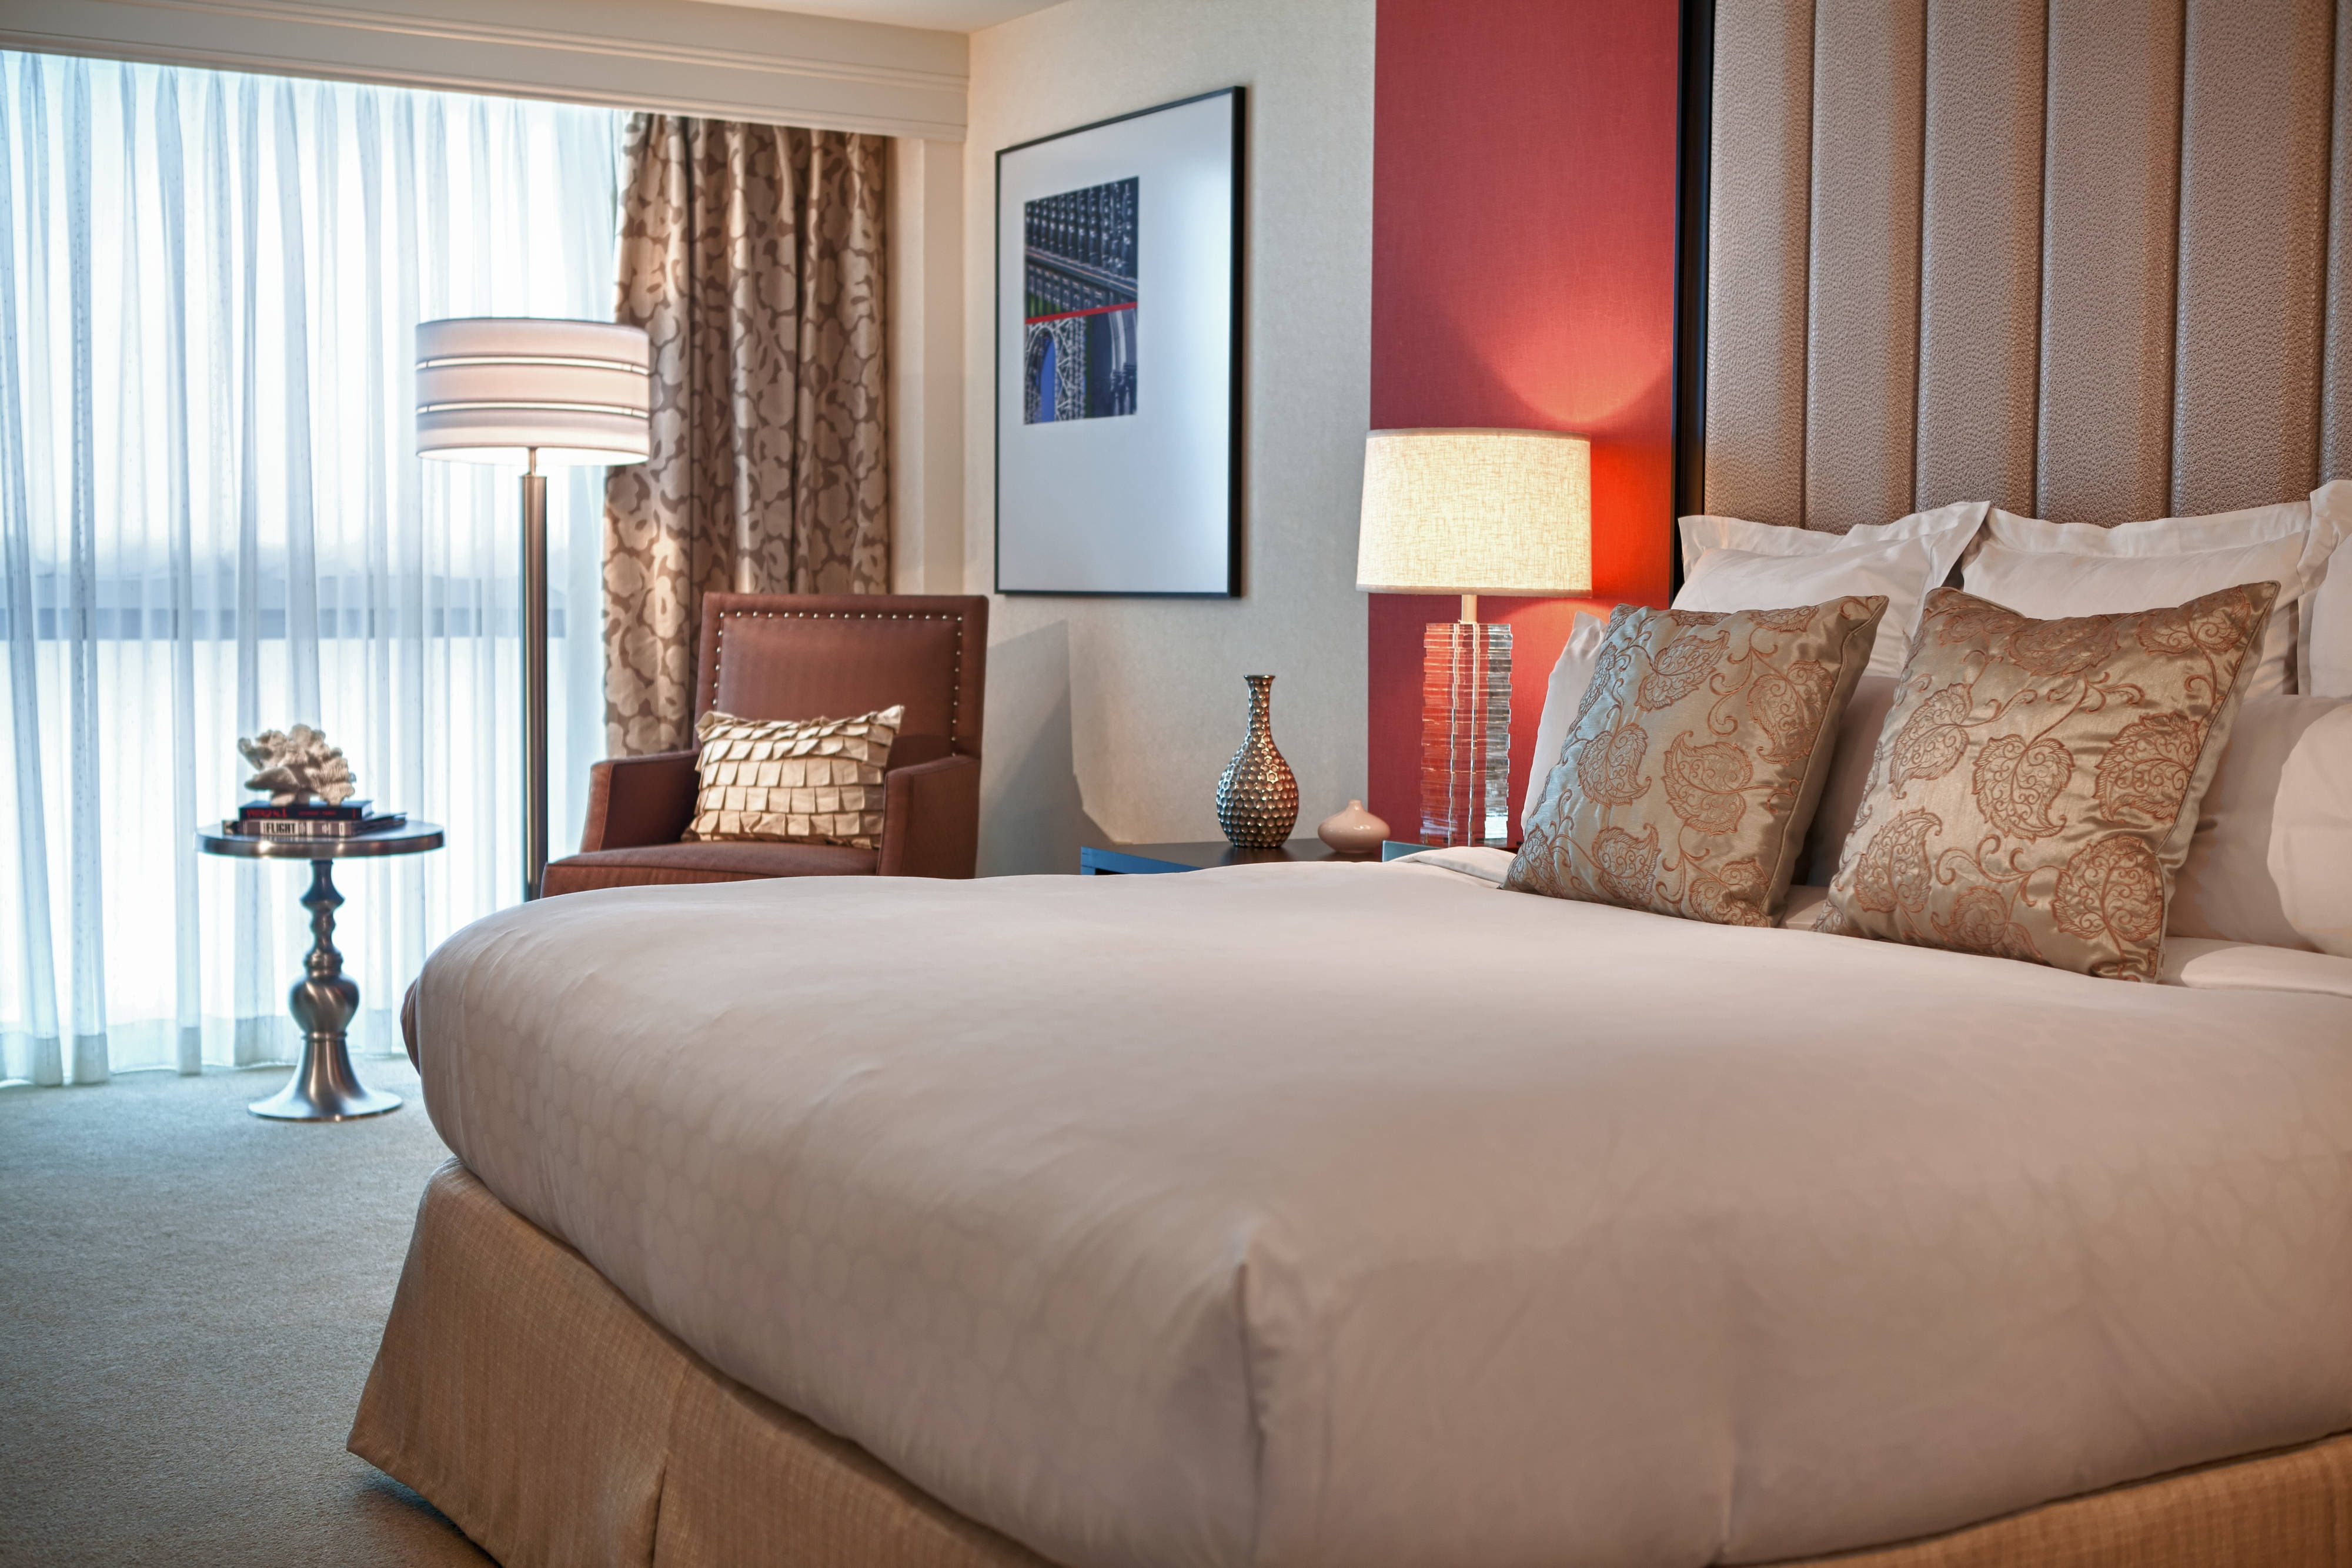 Newark airport hotel presidential suite